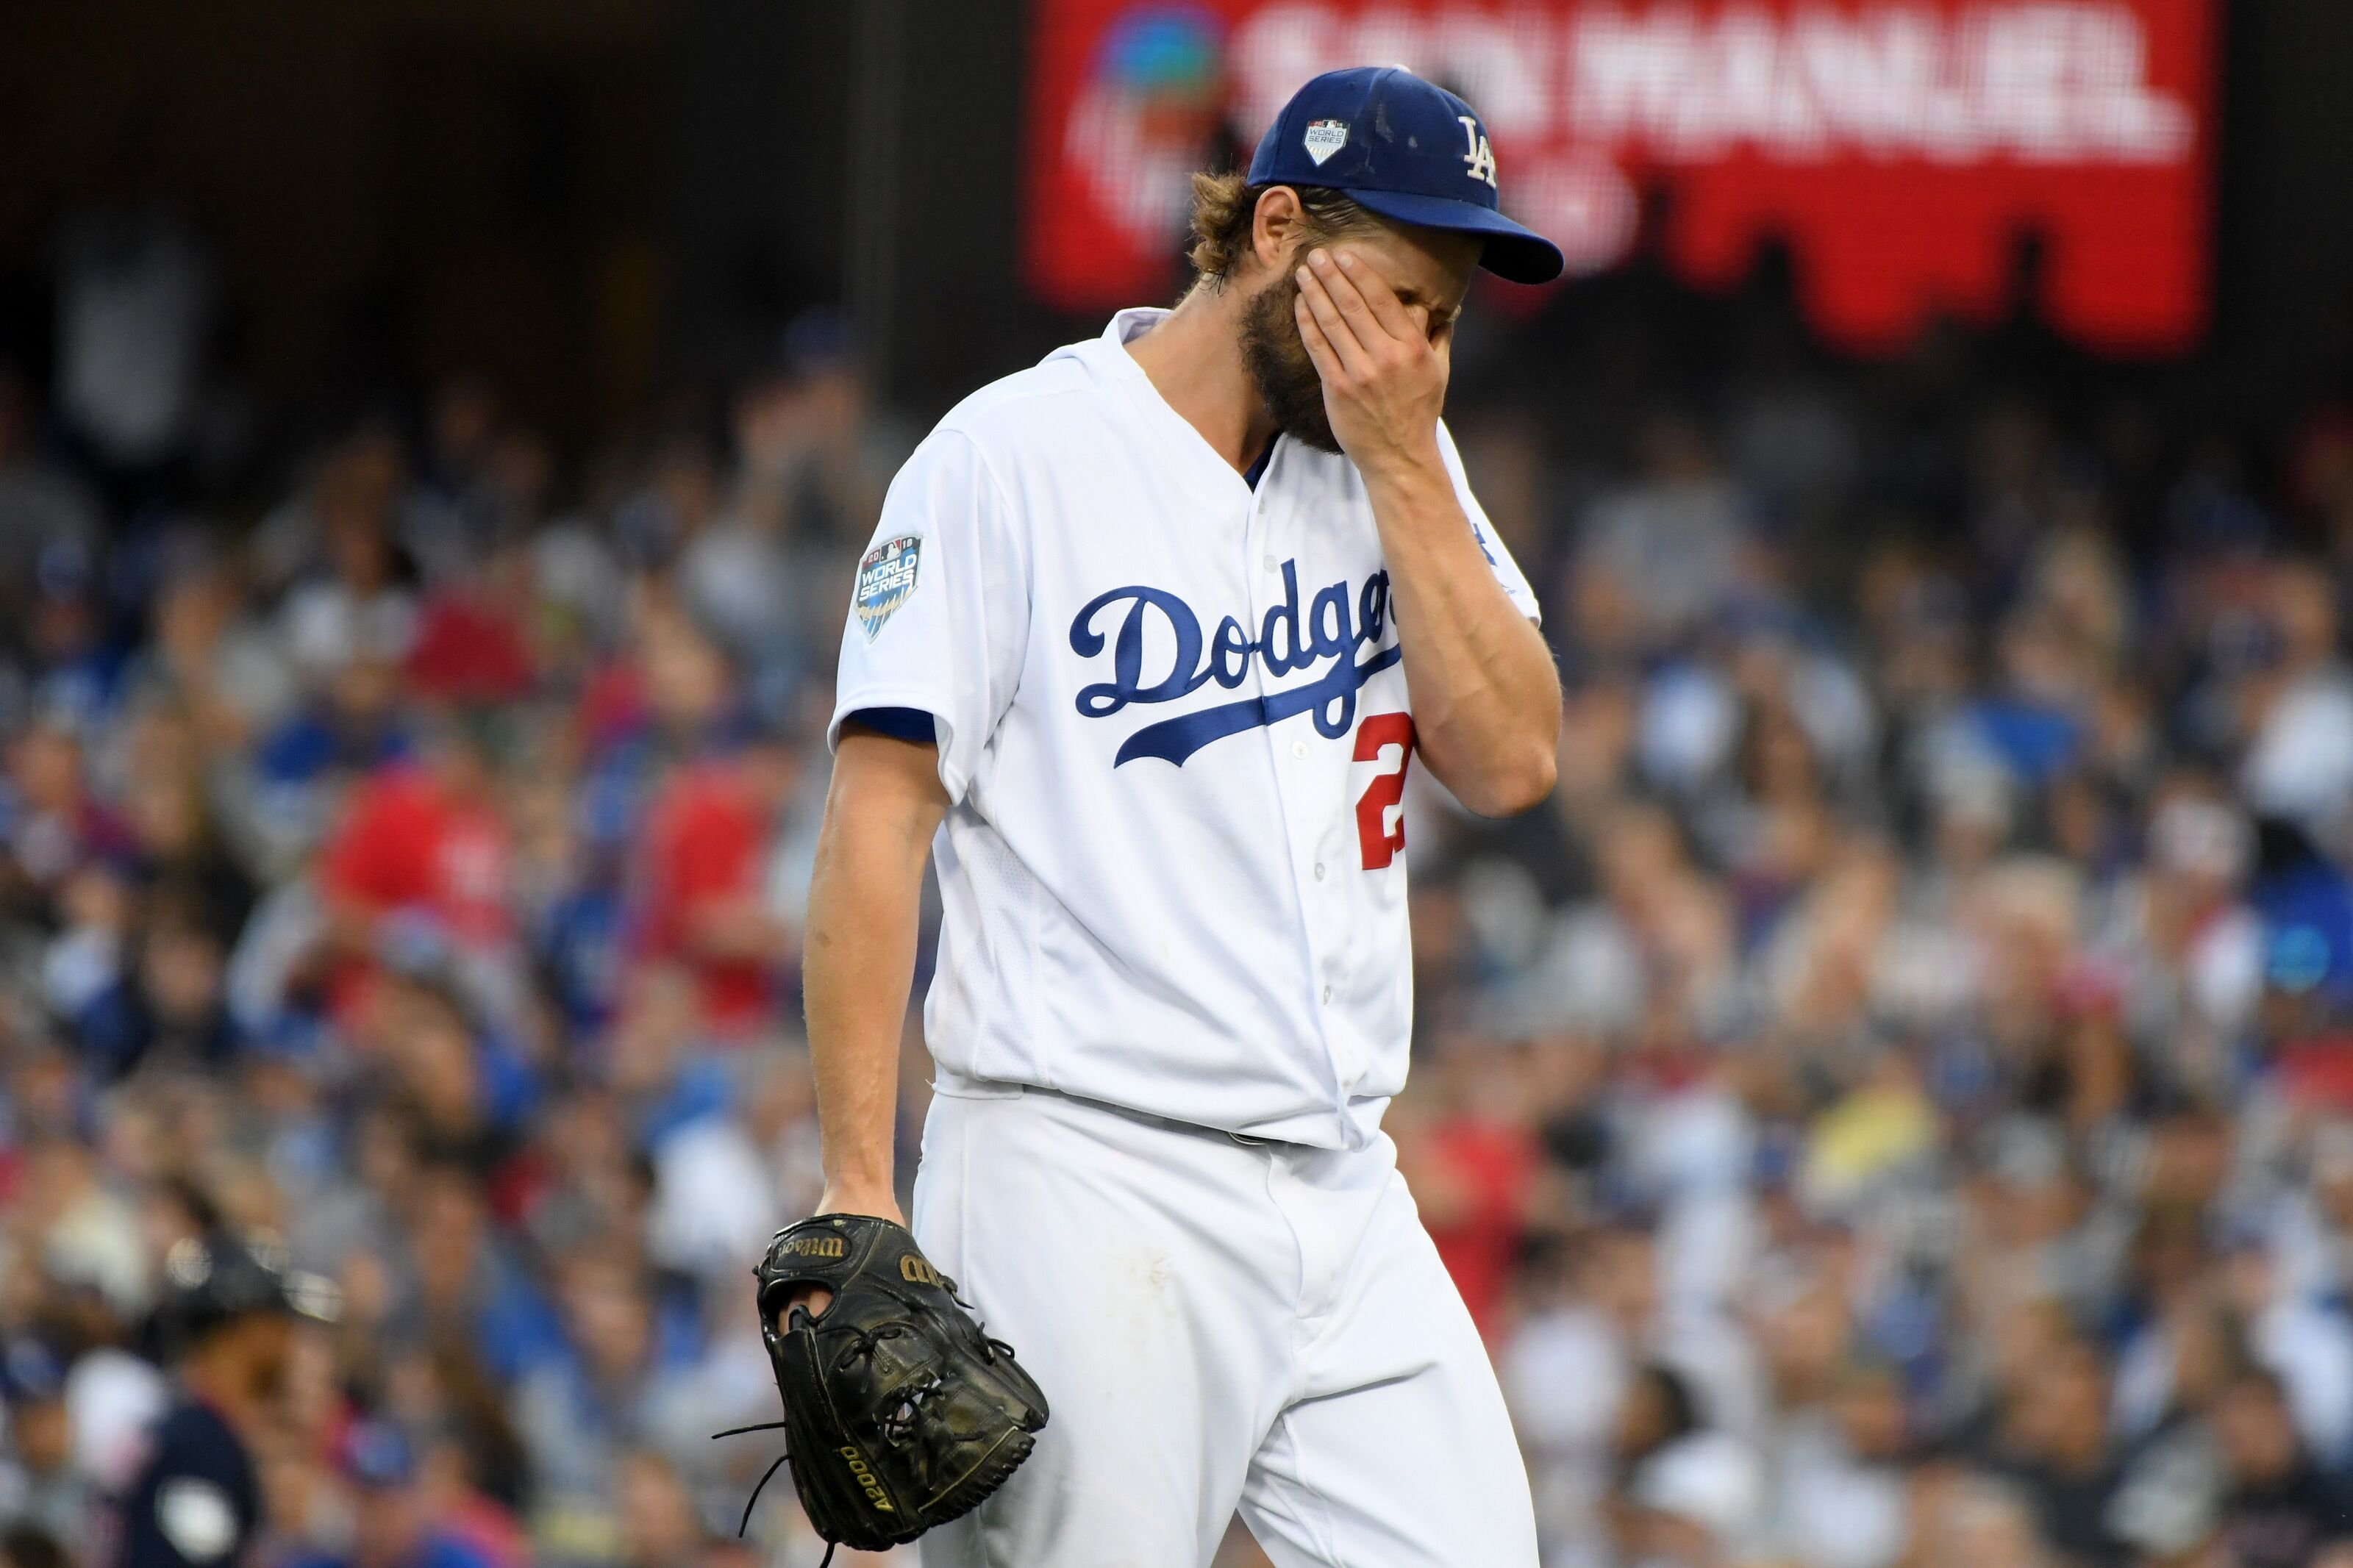 LOS ANGELES, CA - OCTOBER 28: Clayton Kershaw #22 of the Los Angeles Dodgers reacts during the first inning against the Boston Red Sox in Game Five of the 2018 World Series at Dodger Stadium on October 28, 2018 in Los Angeles, California. (Photo by Harry How/Getty Images)